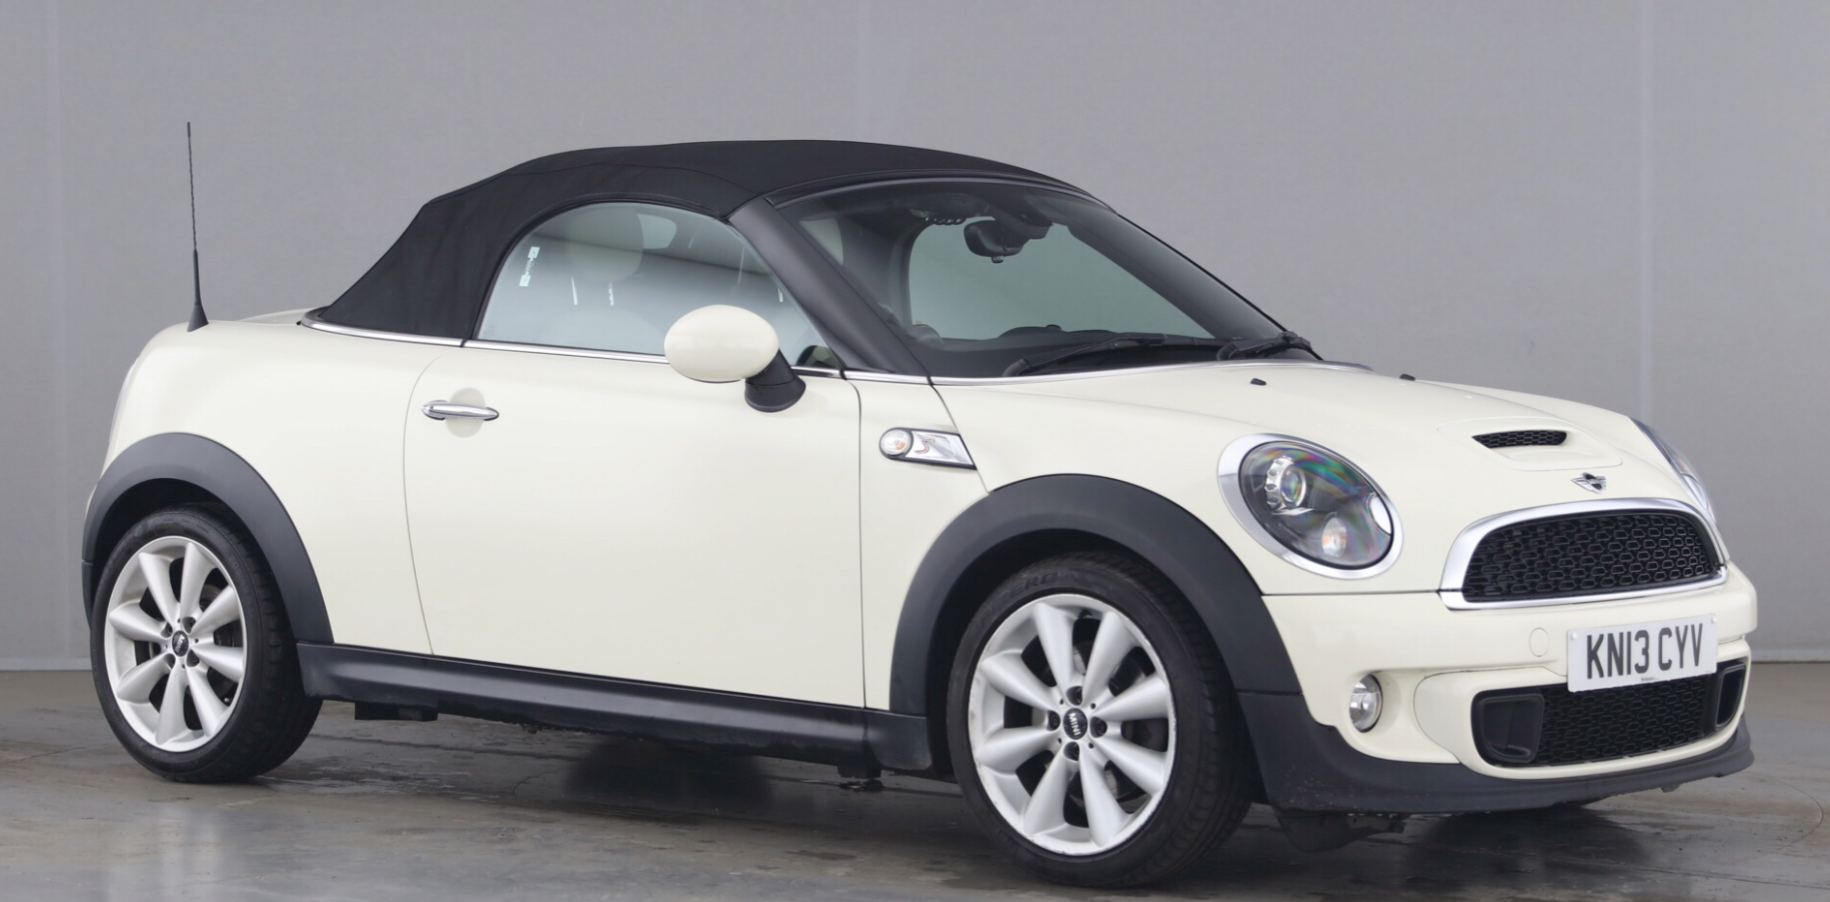 2013 Mini Cooper S Roadster Automatic with HUGE SPEC – Navigation, Cream Leather Sports Seats, Comfort Access, CHILI & Media Pack & More